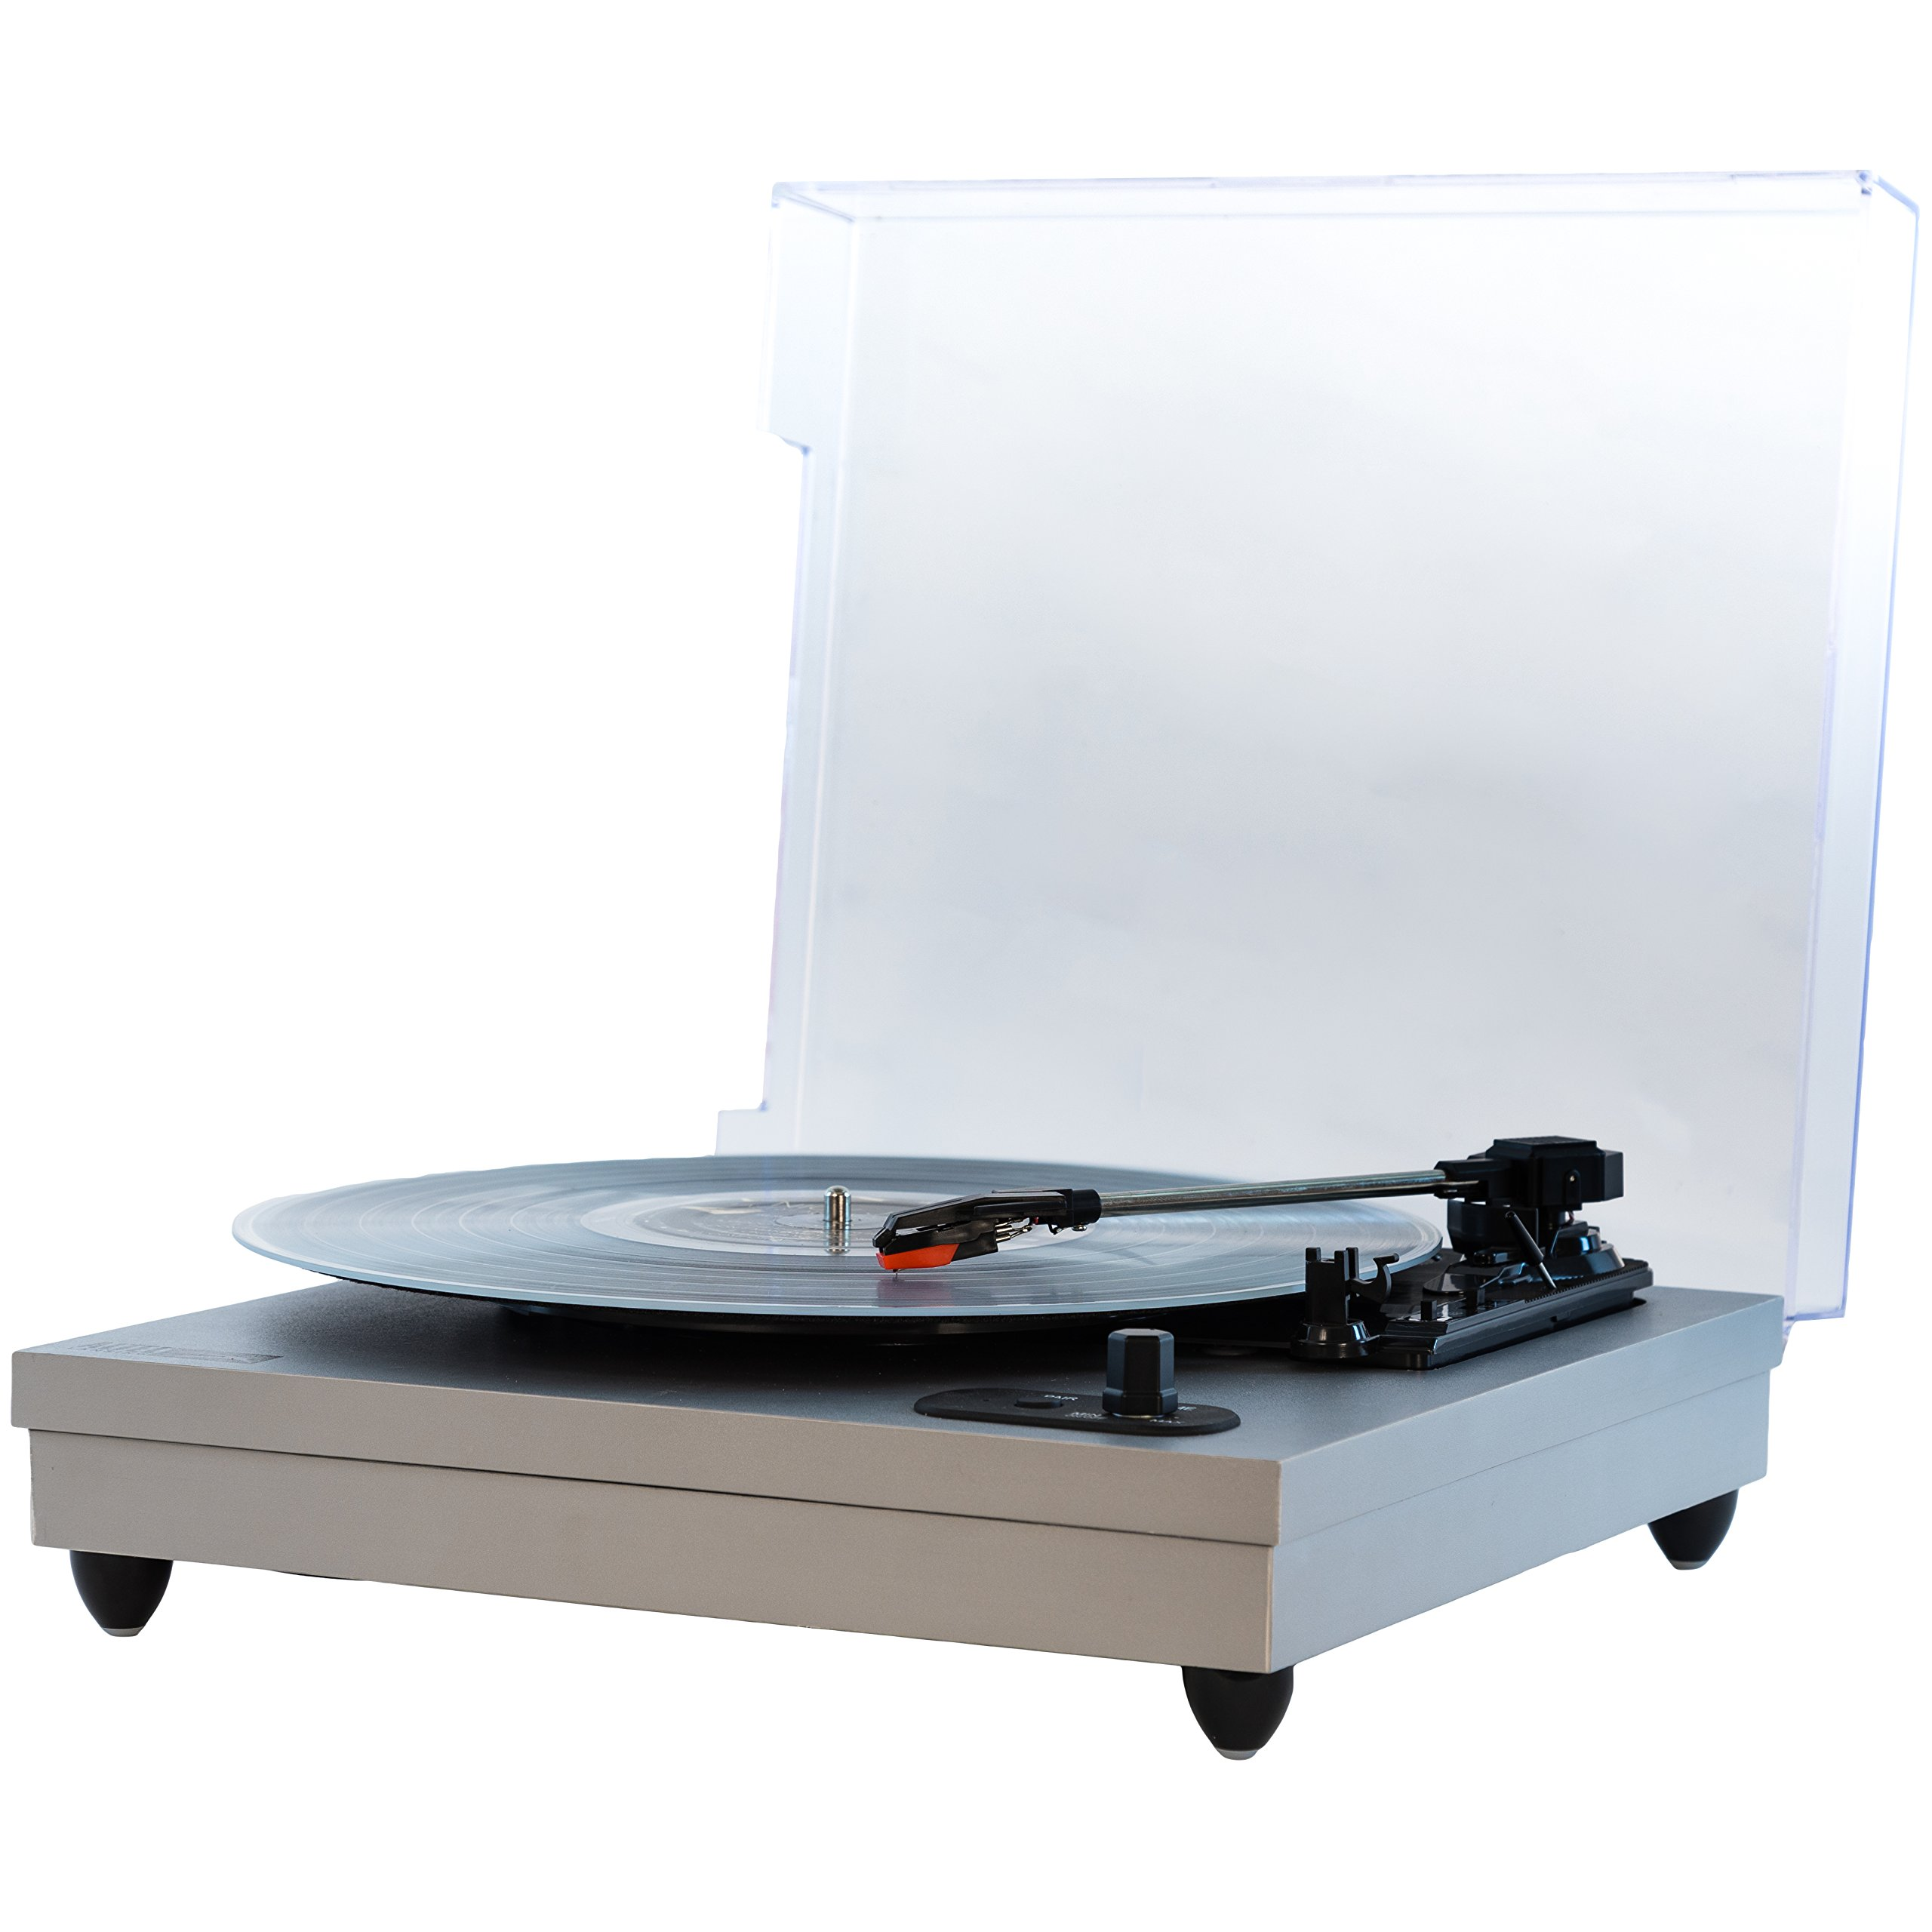 Altec Lansing ALT-500 Classic Turn Bluetooth Turntable with Built-In Stereo Speakers